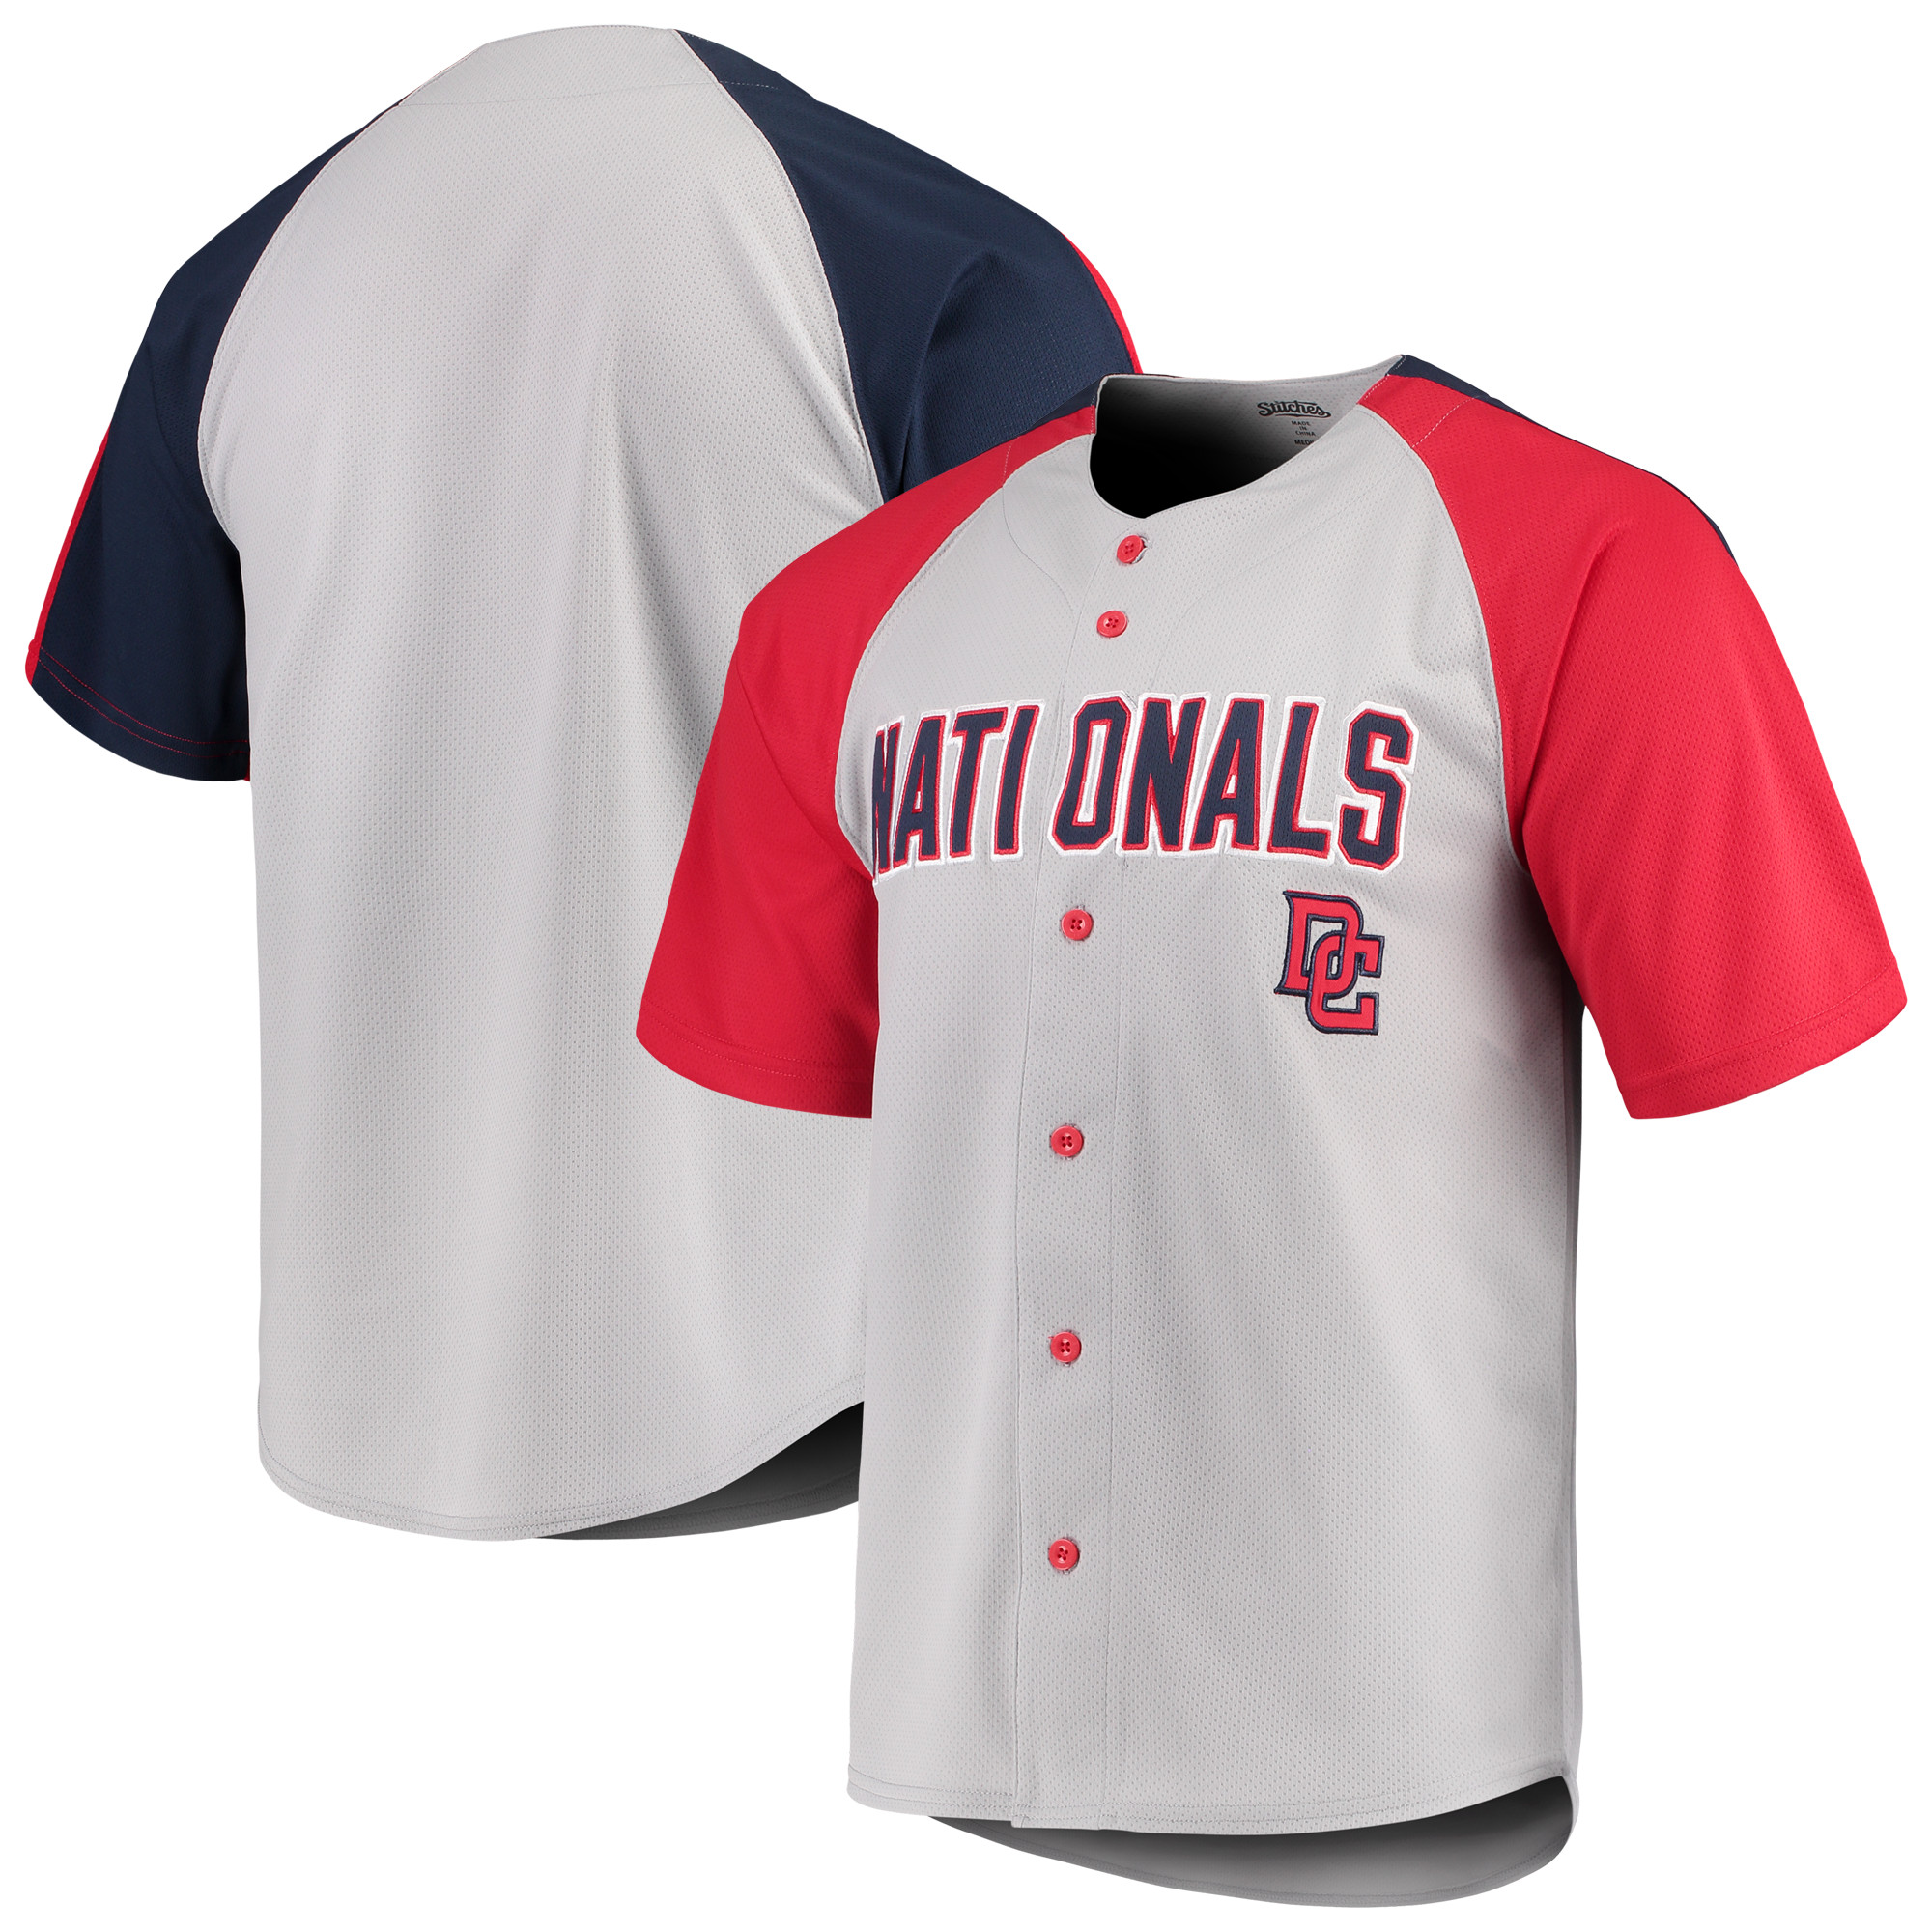 Washington Nationals Stitches Lightweight Mesh Jersey - Gray/Red